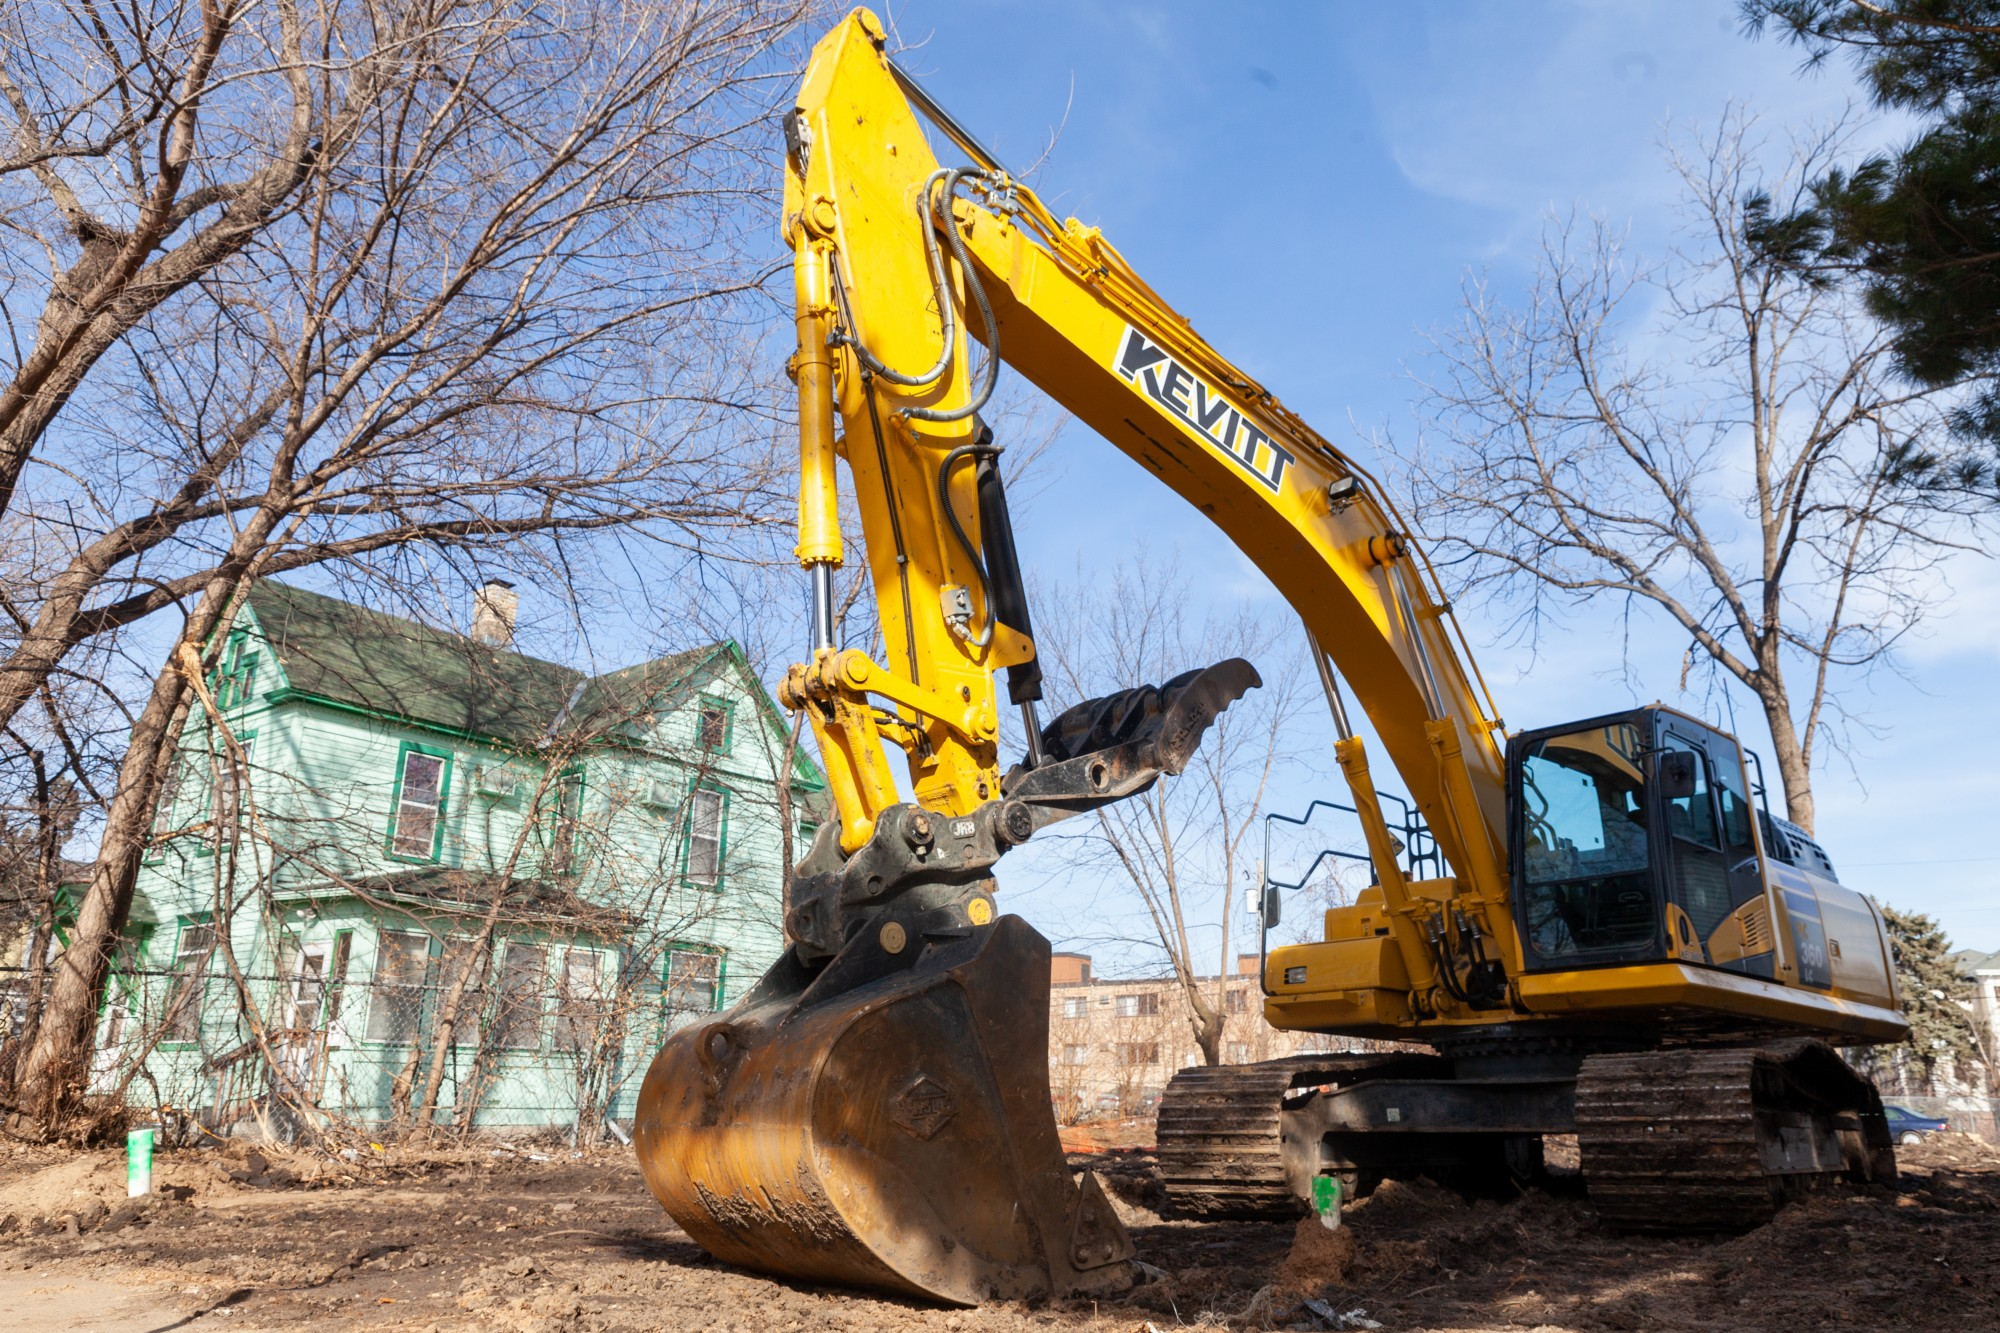 Construction equipment stands ready on an empty plot of land beside homes on Erie Street Southeast. on Friday, March 13. Several homes on the block are set to be demolished as part of a broad plan for the future clinical campus facility.